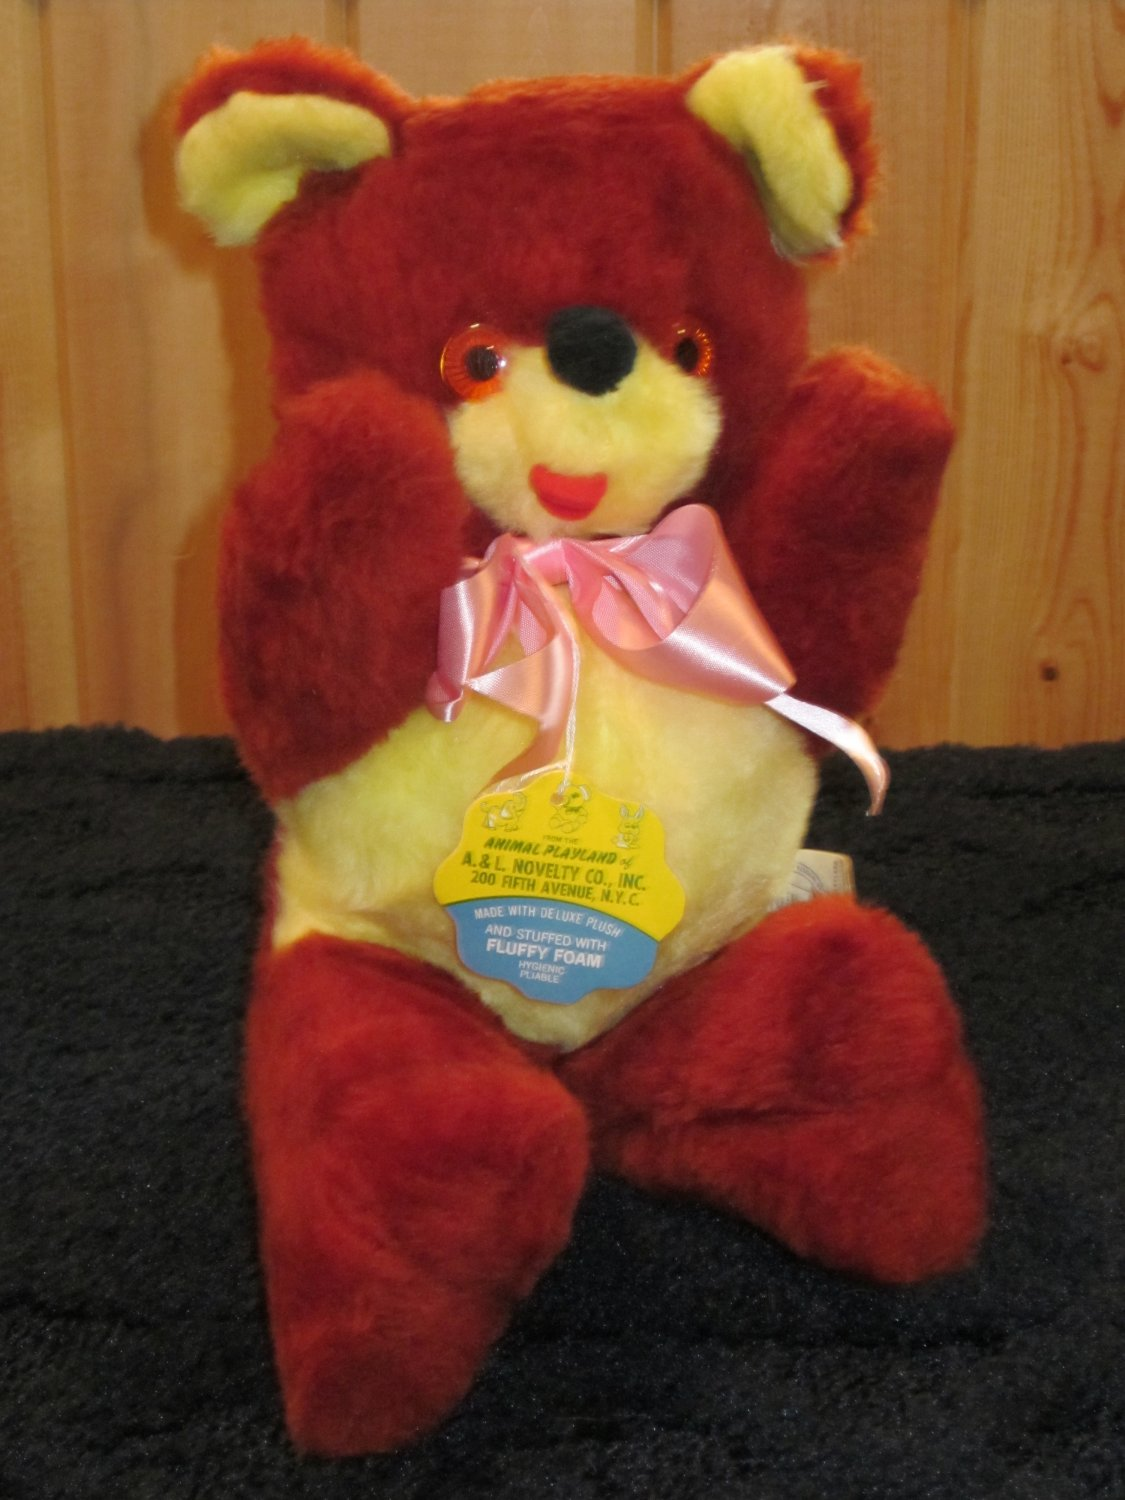 Vintage Teddy Bear from Animal Playland of A & L Novelty Co inc